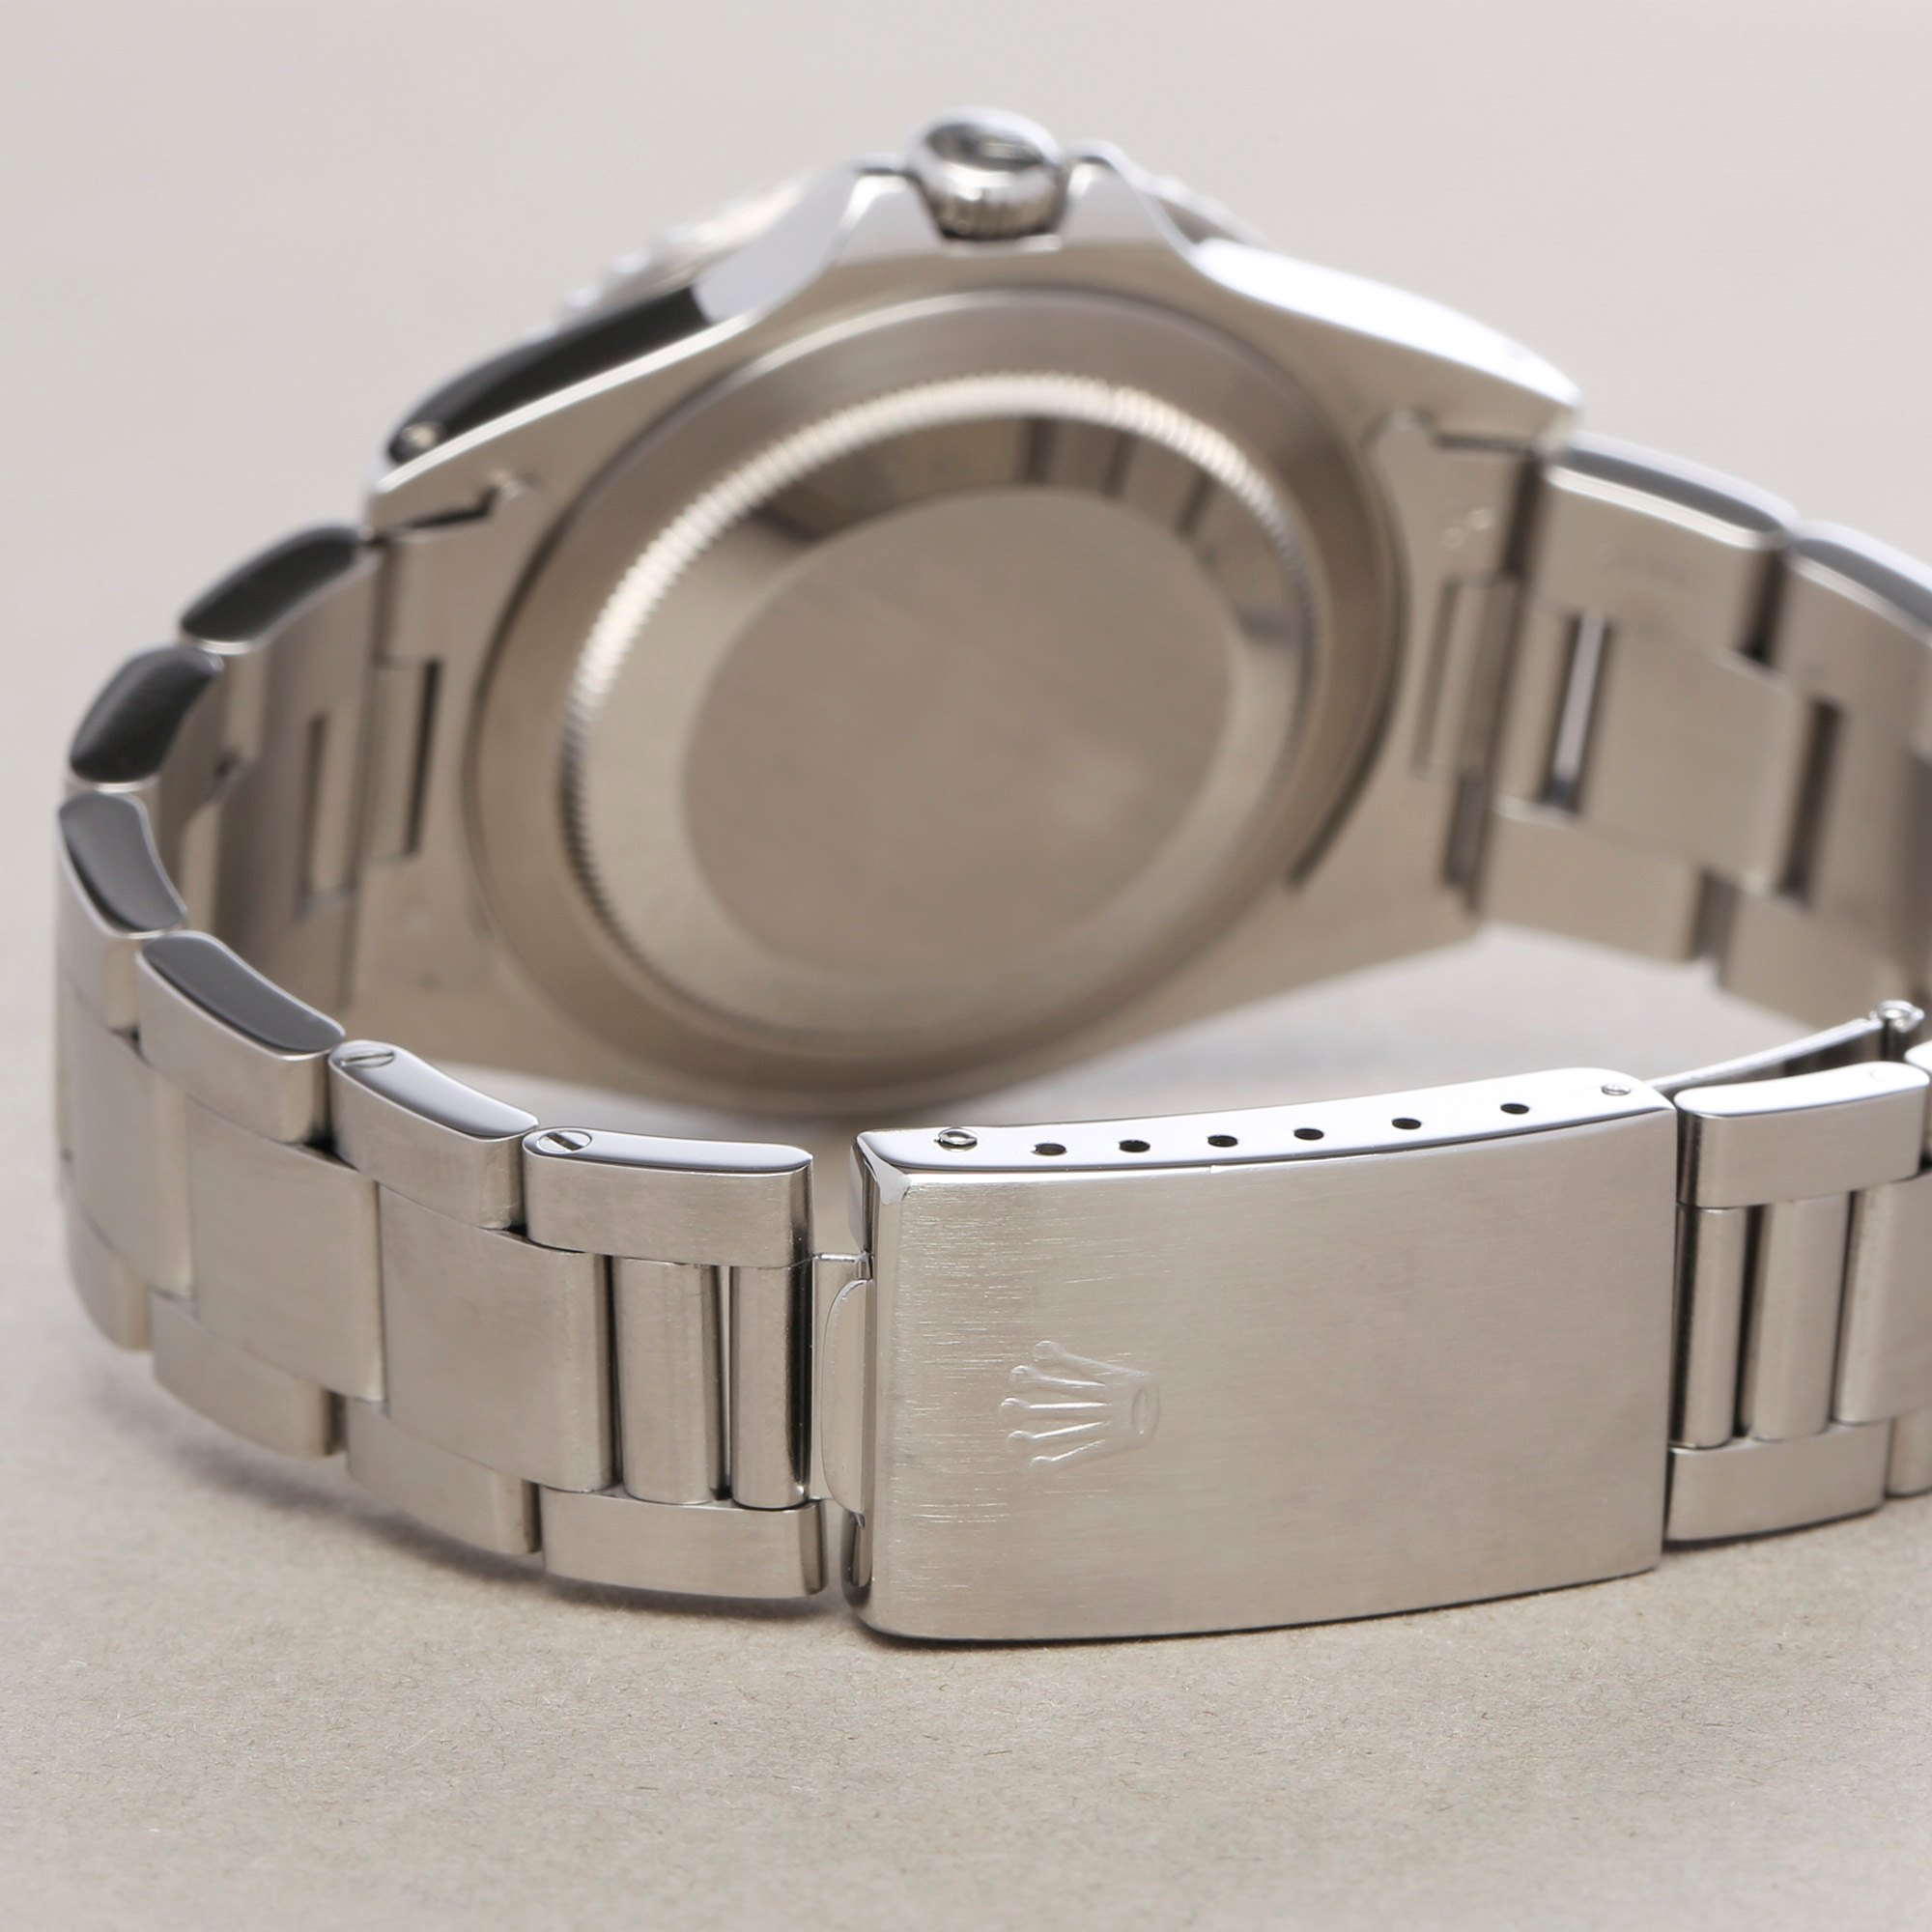 Rolex GMT-Master 16700 Men Stainless Steel Pepsi Serif Fat Font Watch - Image 8 of 11